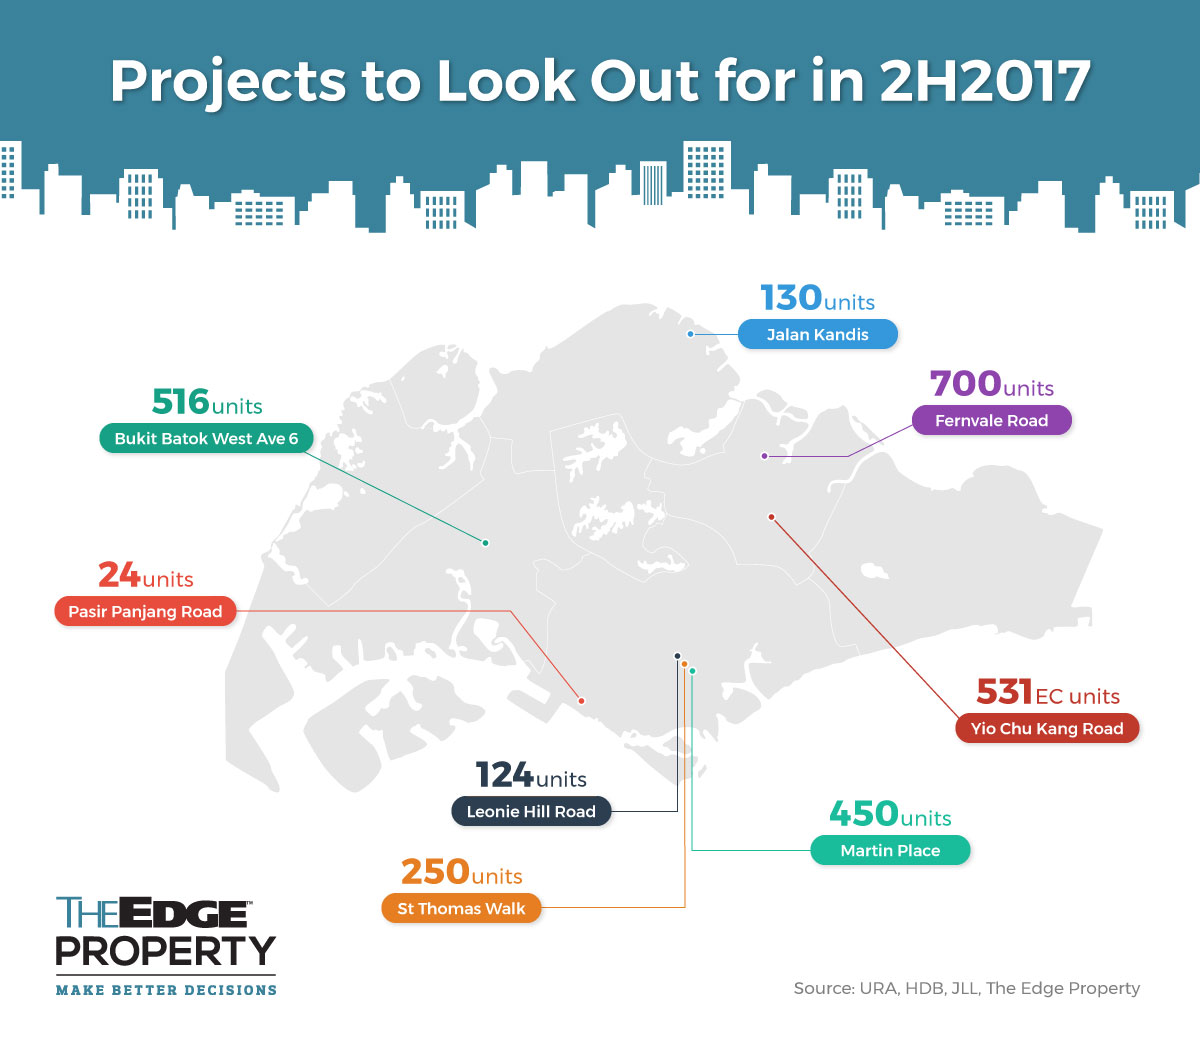 infographic projects to look out for in 2h2017 property news by edgeprop sg Wiring Diagram for PRS Custom 24 at soozxer.org